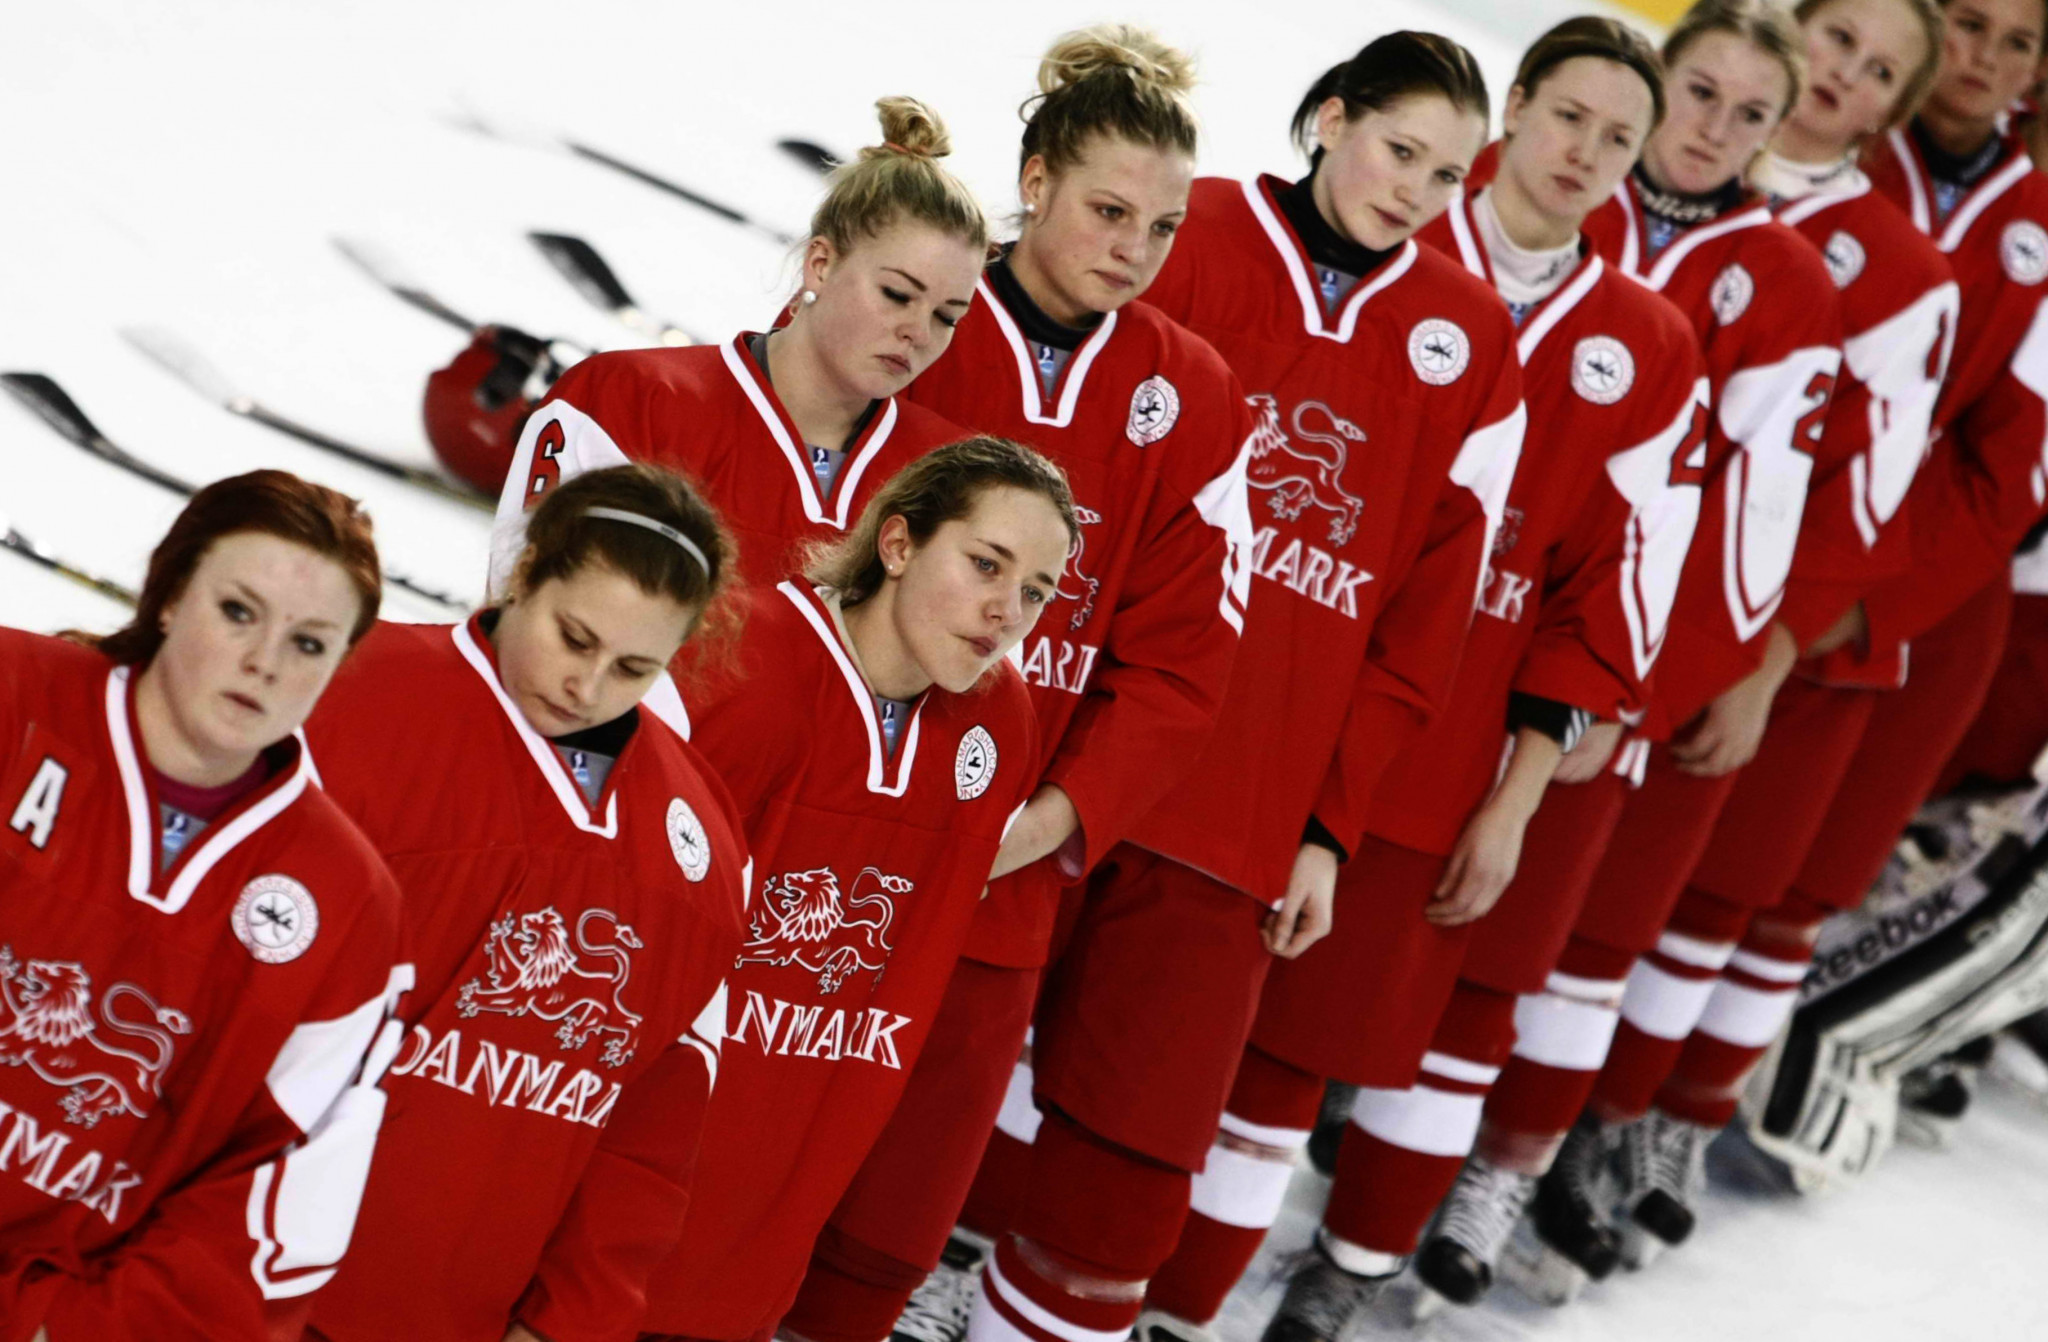 Denmark are preparing to return to the top tier of the World Championships ©Getty Images